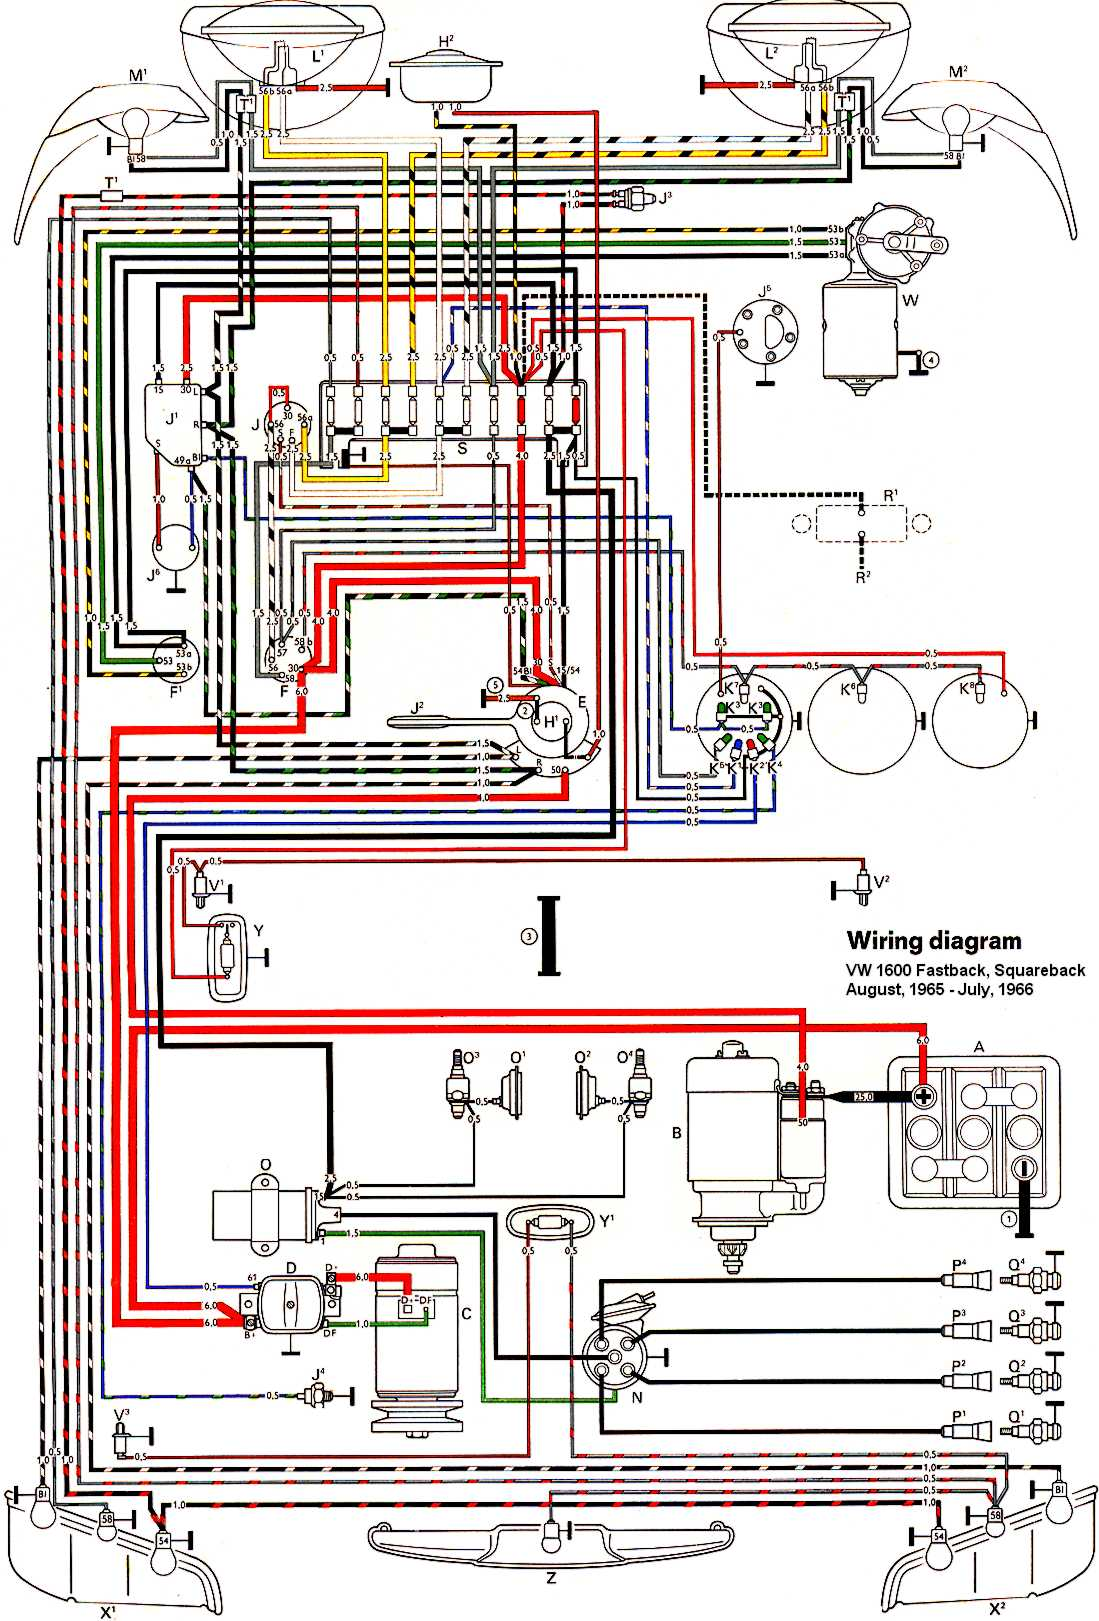 type3_1600_66 thesamba com type 3 wiring diagrams find wiring diagram for 87 ford f 150 at webbmarketing.co